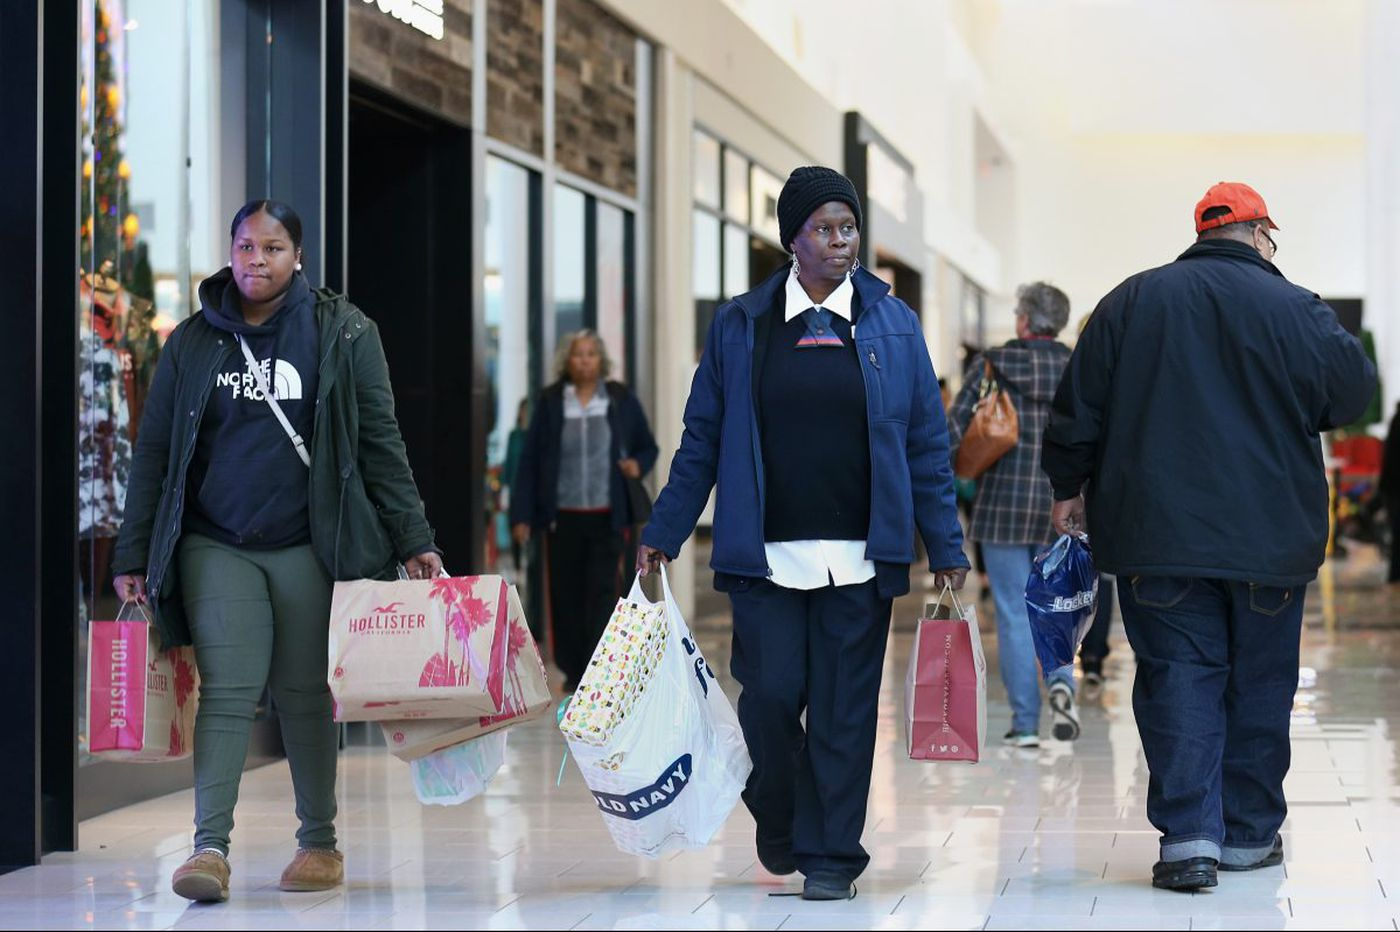 Cold weather and consumer confidence boosted holiday sales in Philly and the nation